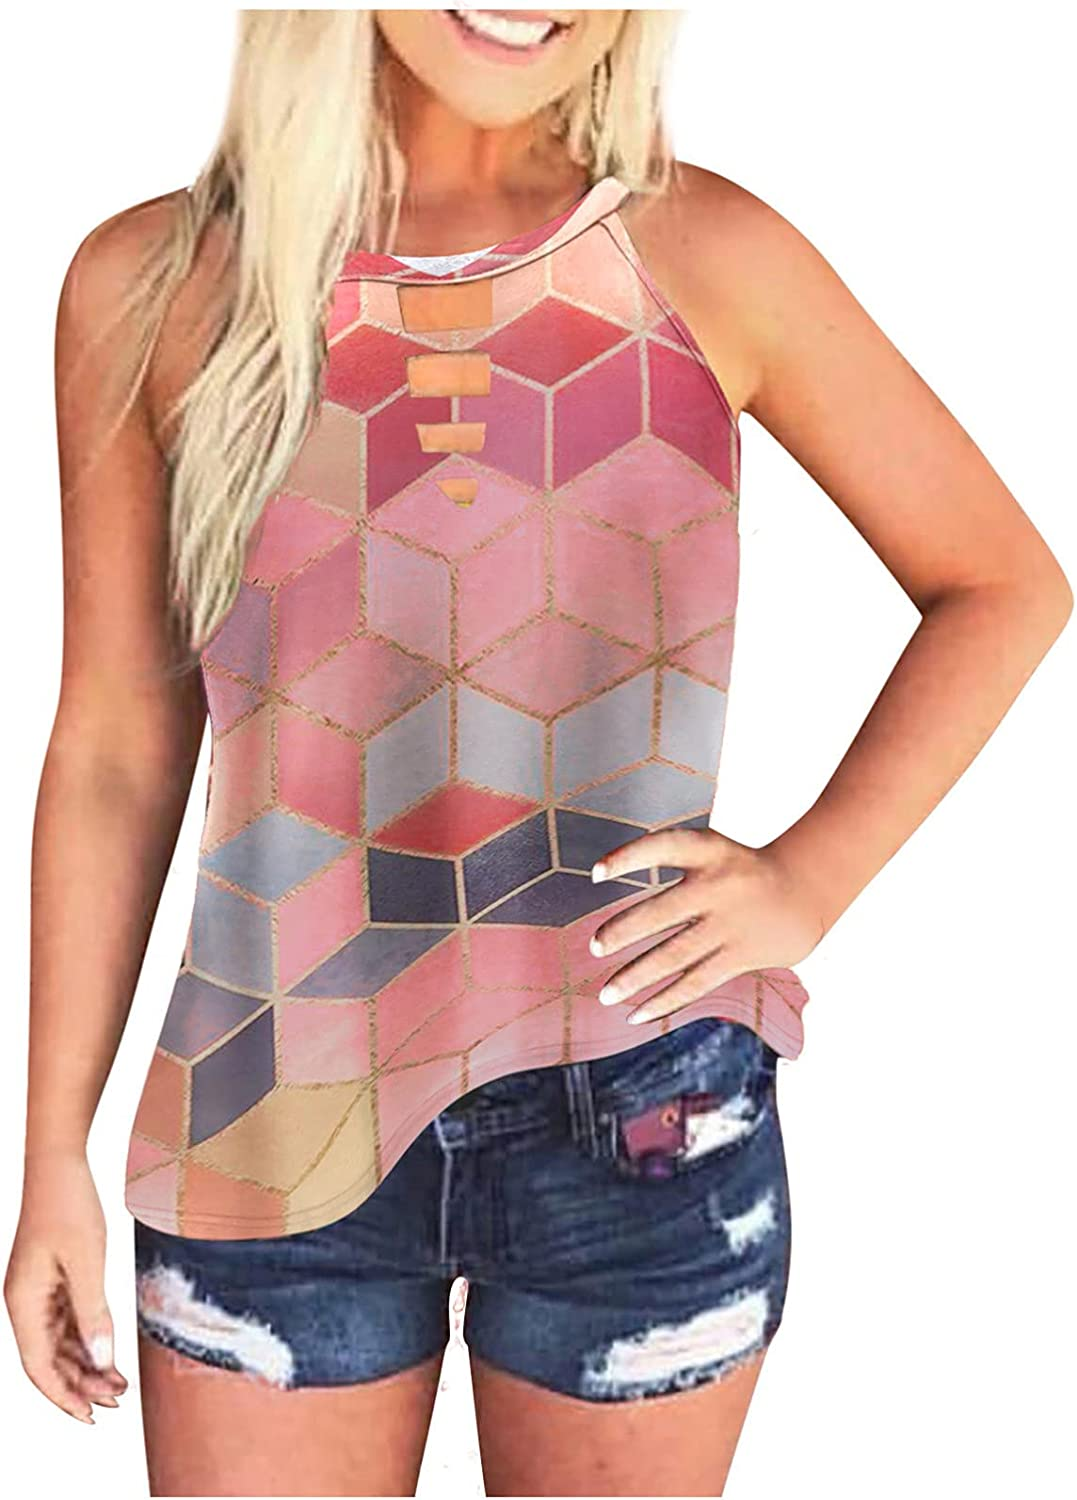 AODONG Tank Tops for Women Trendy, Womens Tie-Dye Summer Shirts Sleeveless Daily Tees Pullover T-Shirts Loose Blouses